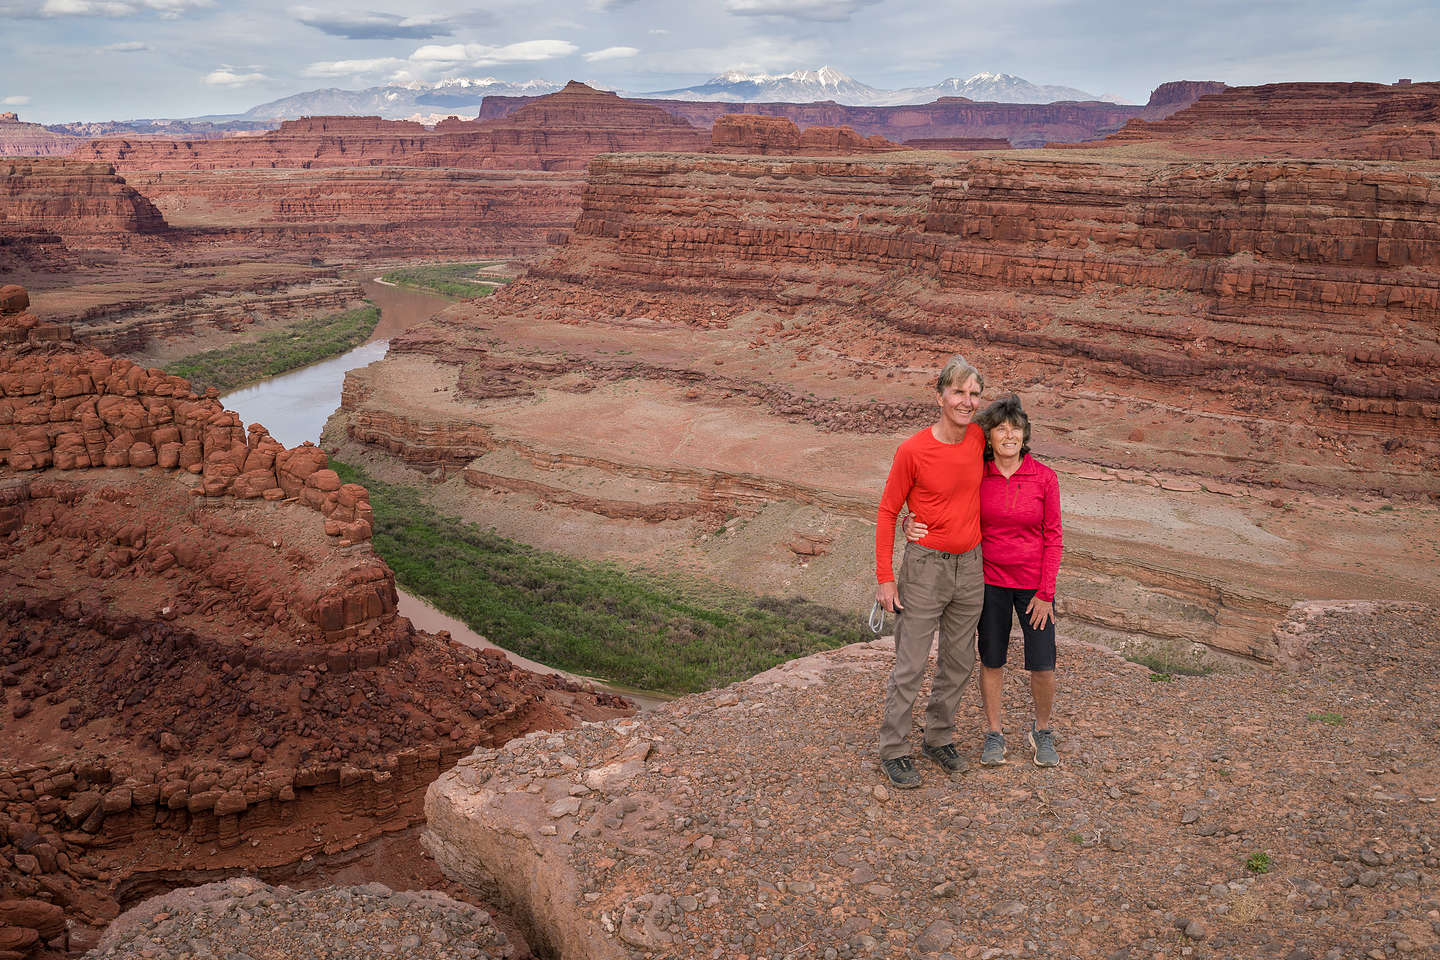 Camping at Thelma and Louise Point on the Potash Road, Moab